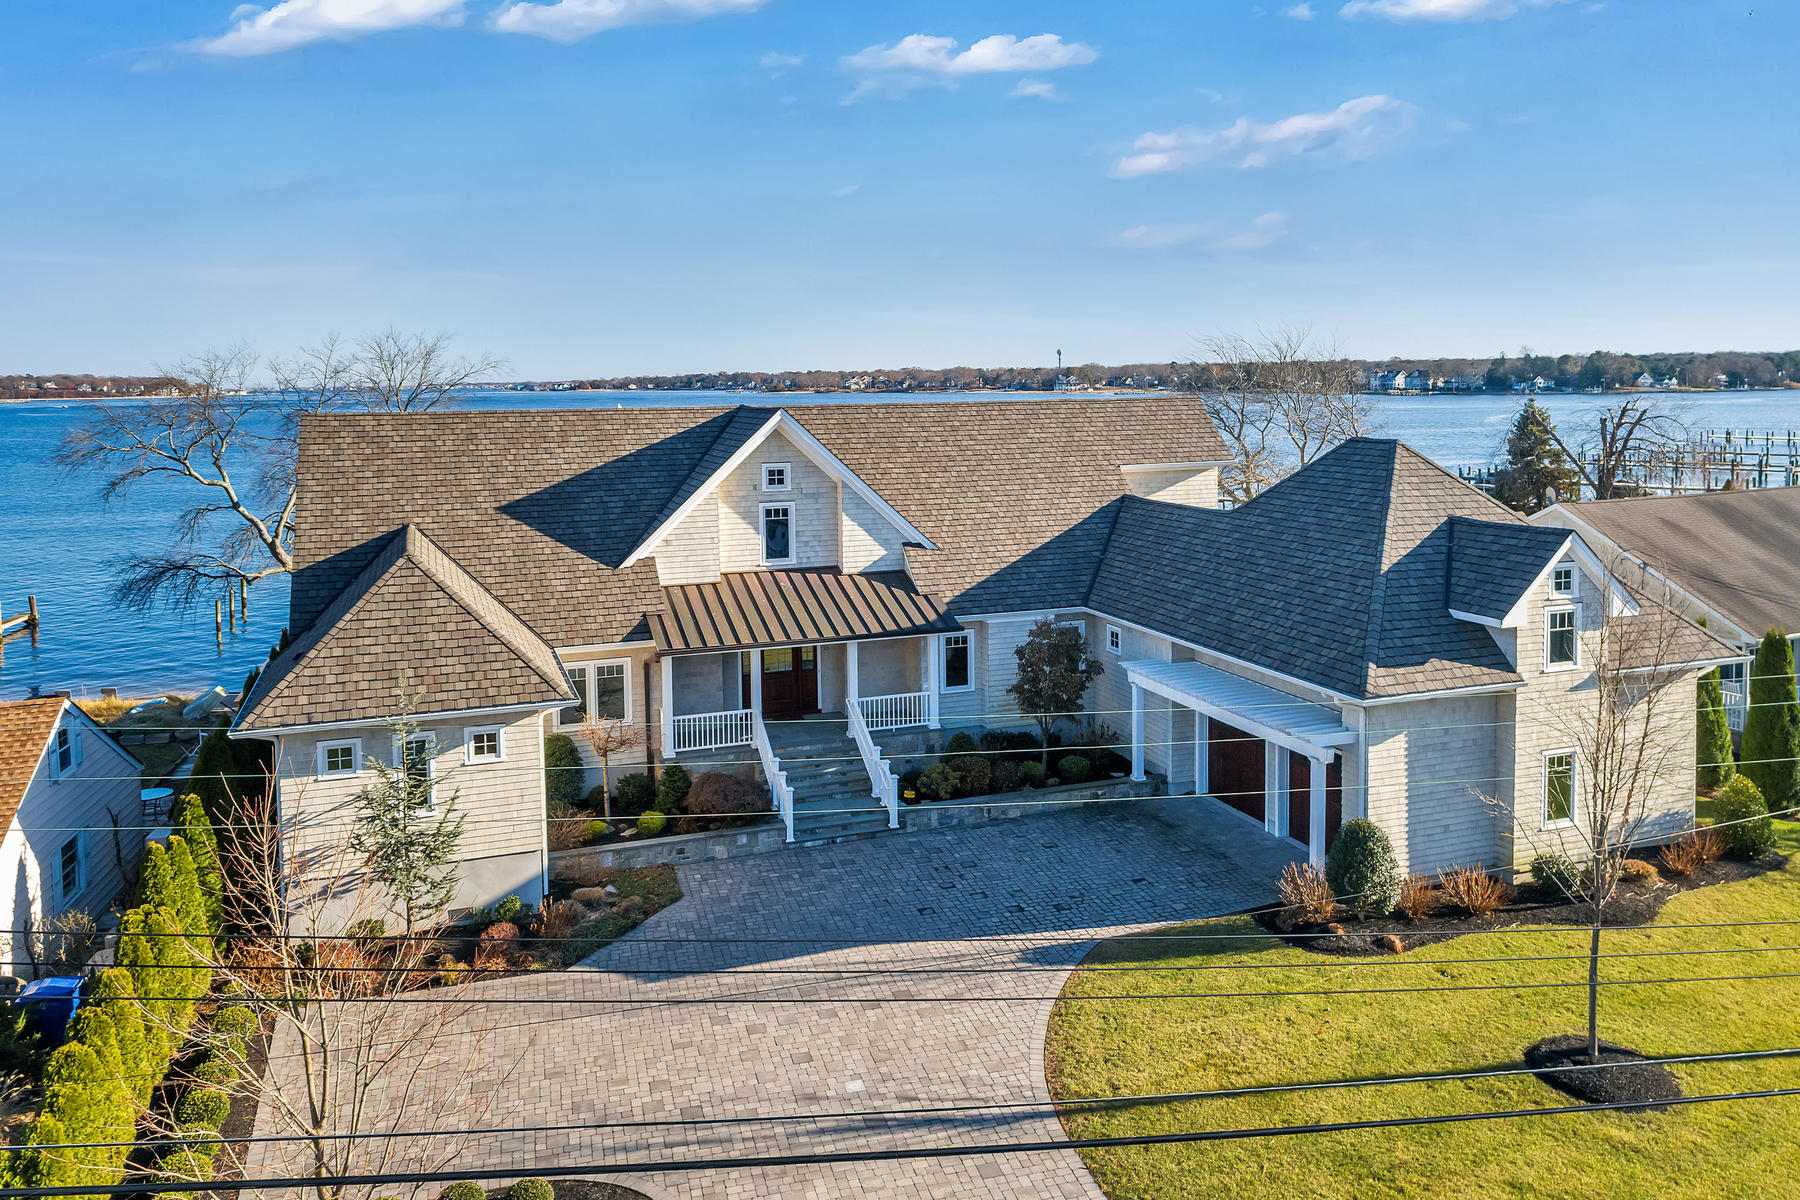 Single Family Homes for Sale at Custom Built Shore Cape Style Home 33 Haines Cove Drive, Toms River, New Jersey 08753 United States